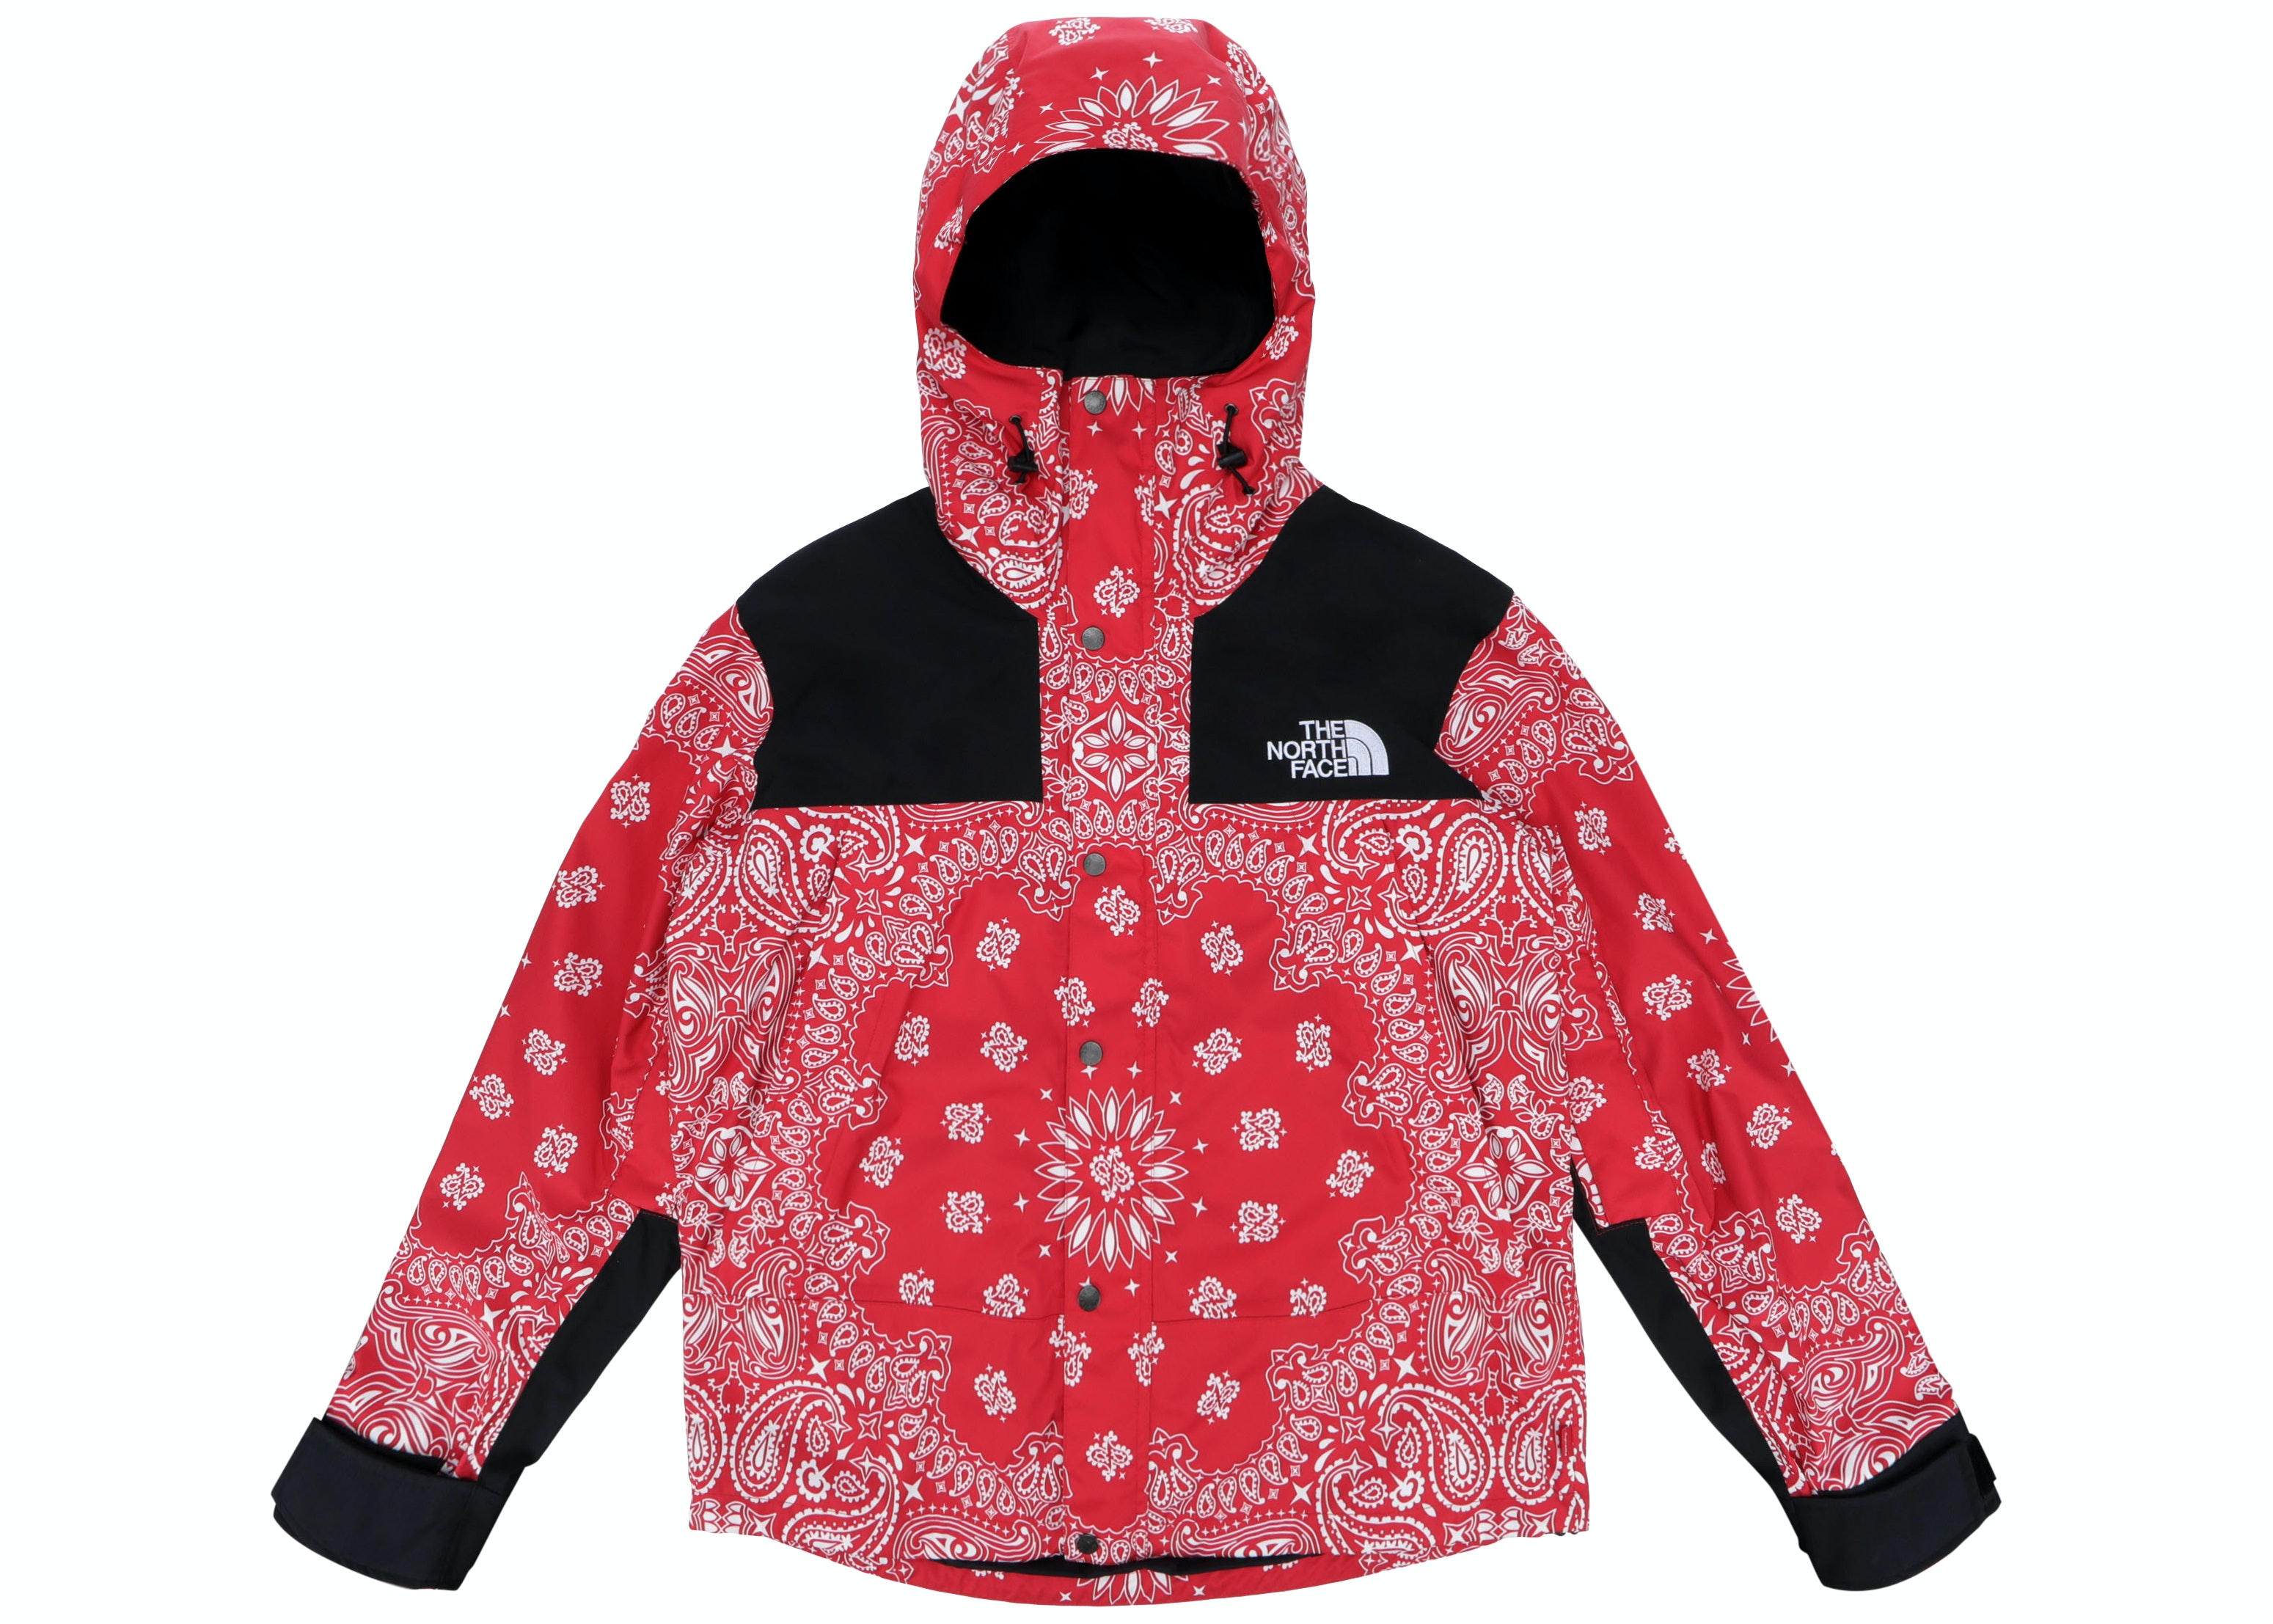 North face jacket for kids